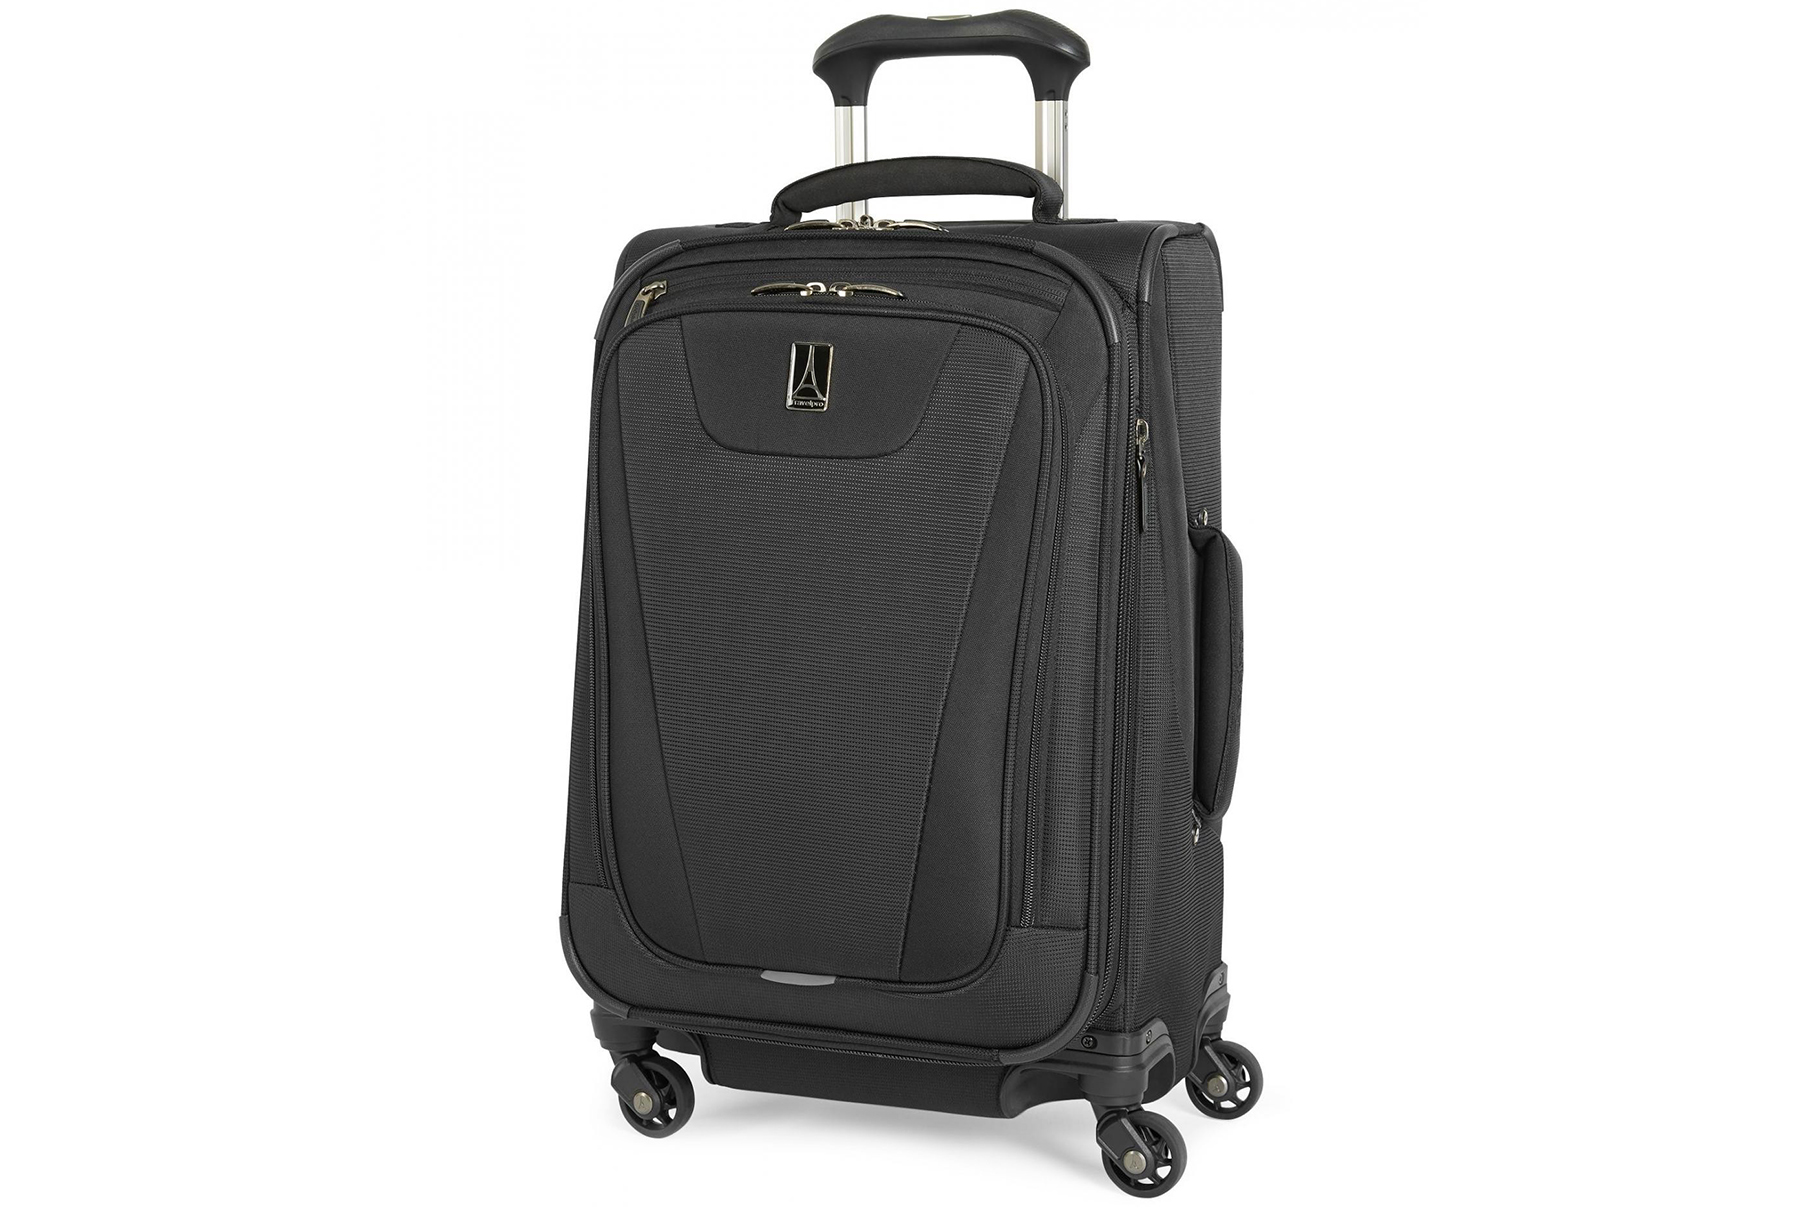 Travelpro Maxlite 4 Expandable 21-Inch Spinner Suitcase